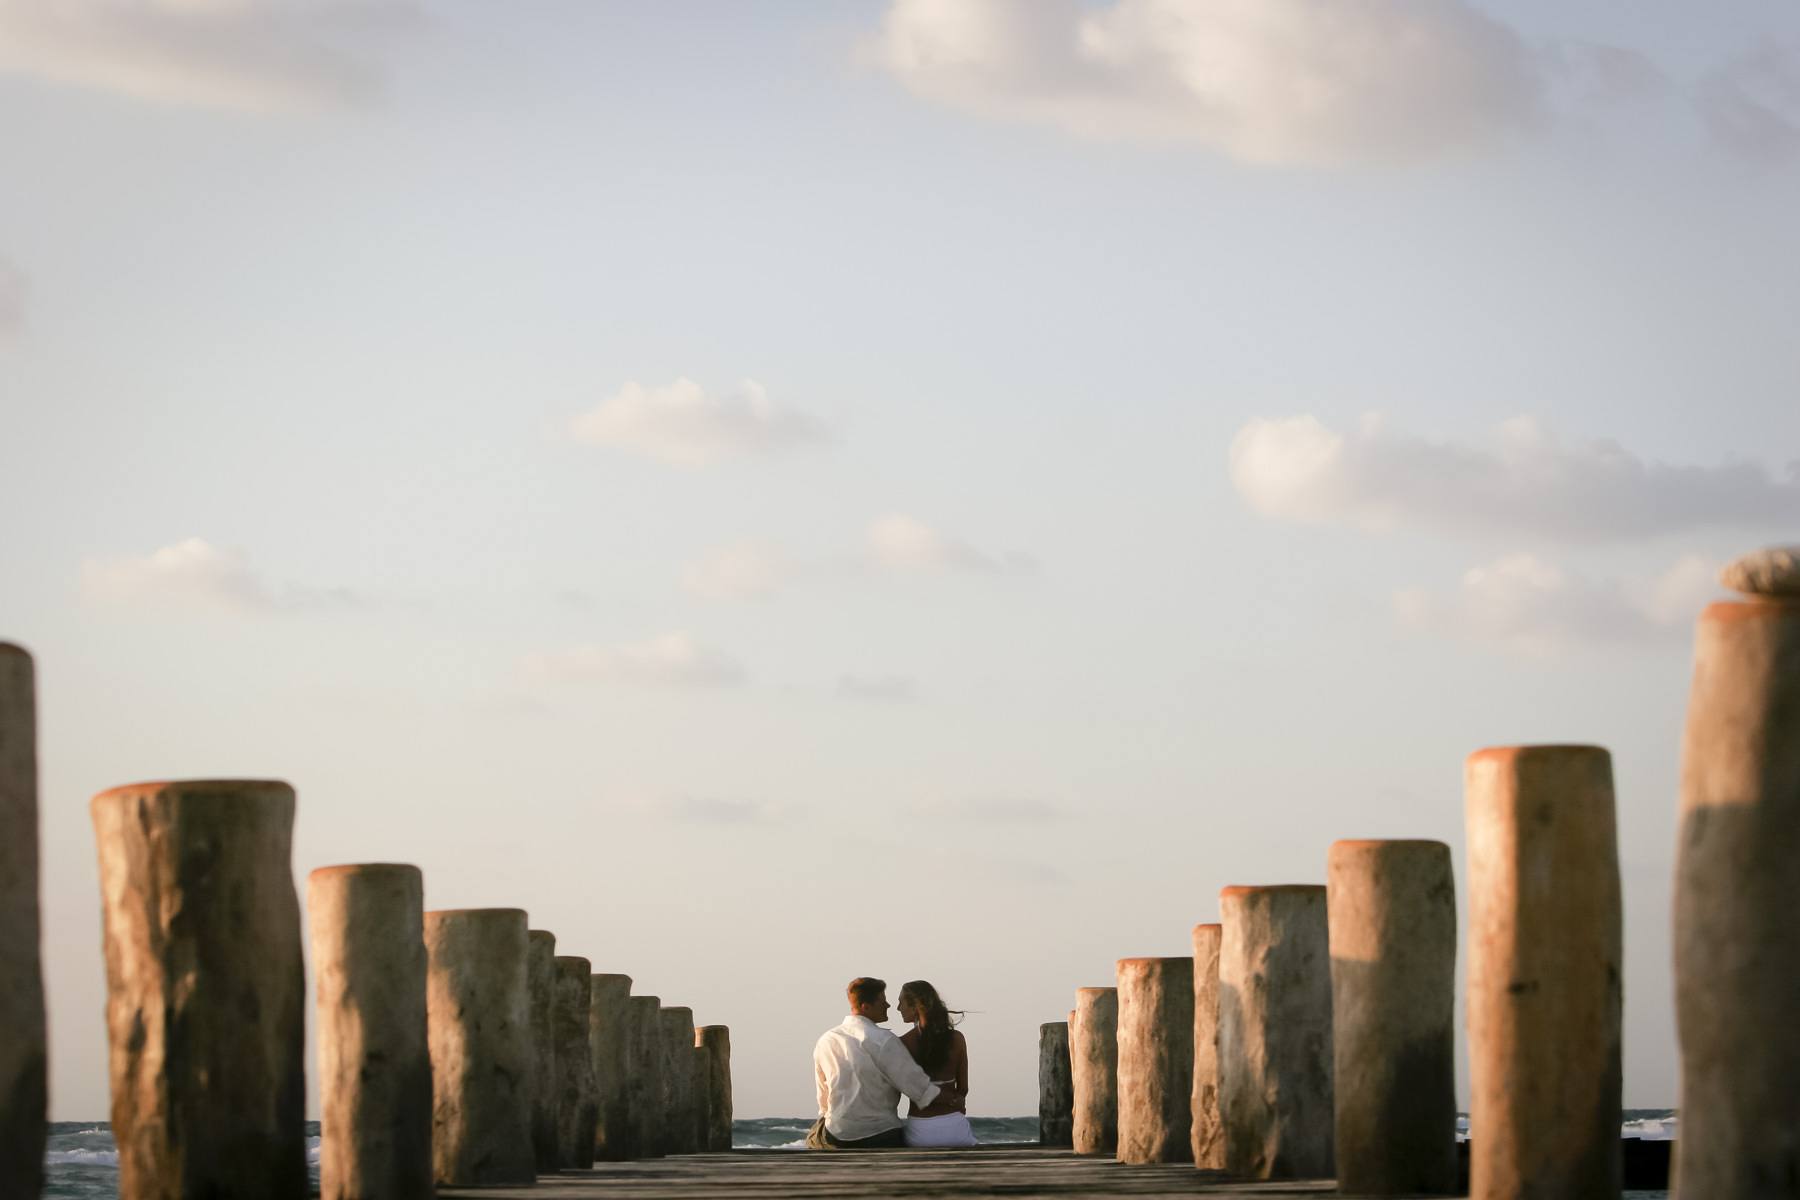 Man and woman sit together on ocean pier.